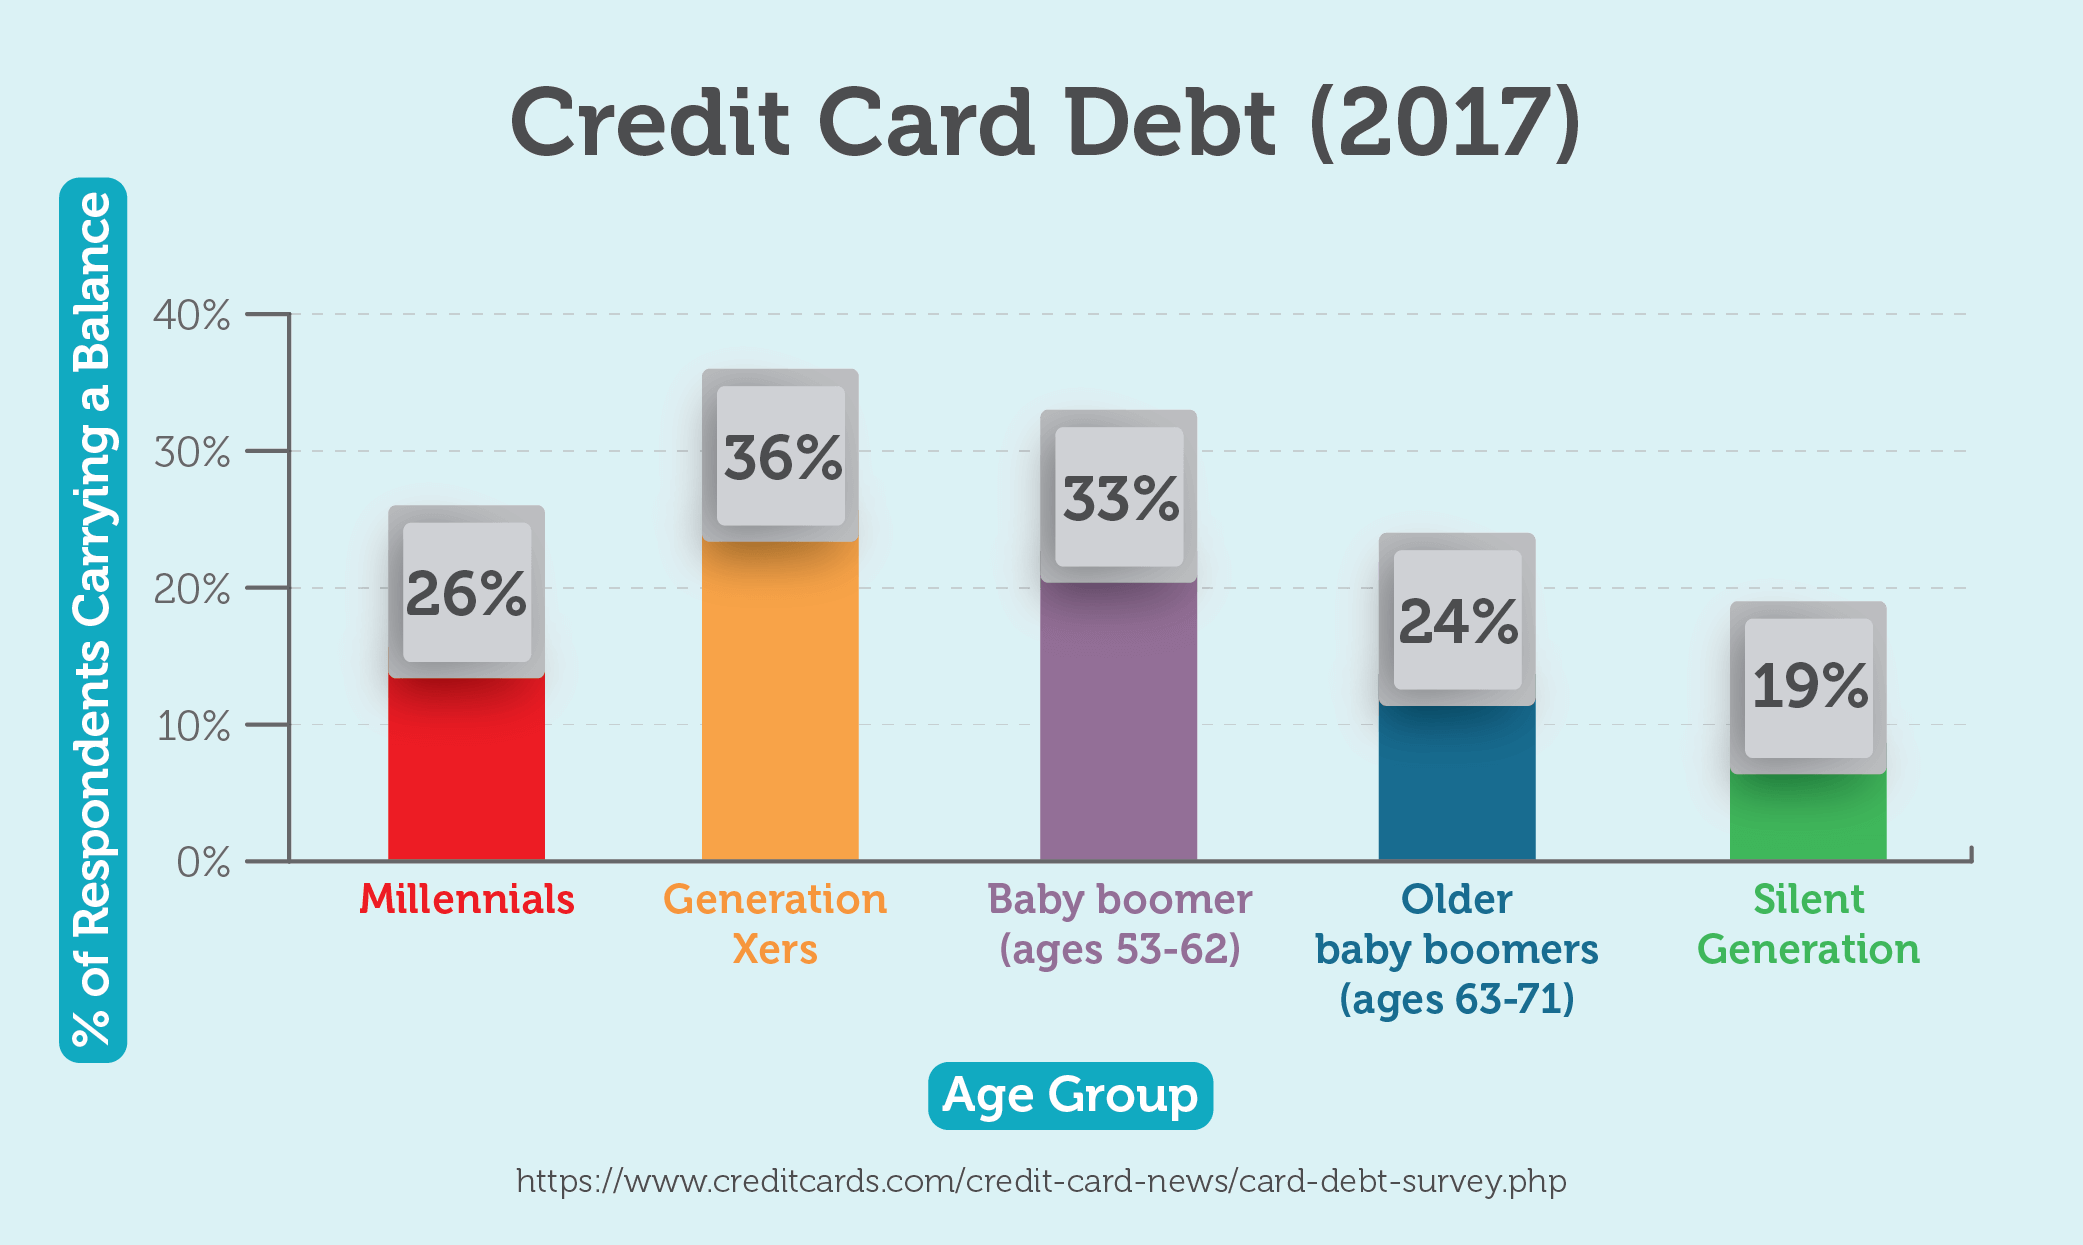 Credit Card Debt (2017)